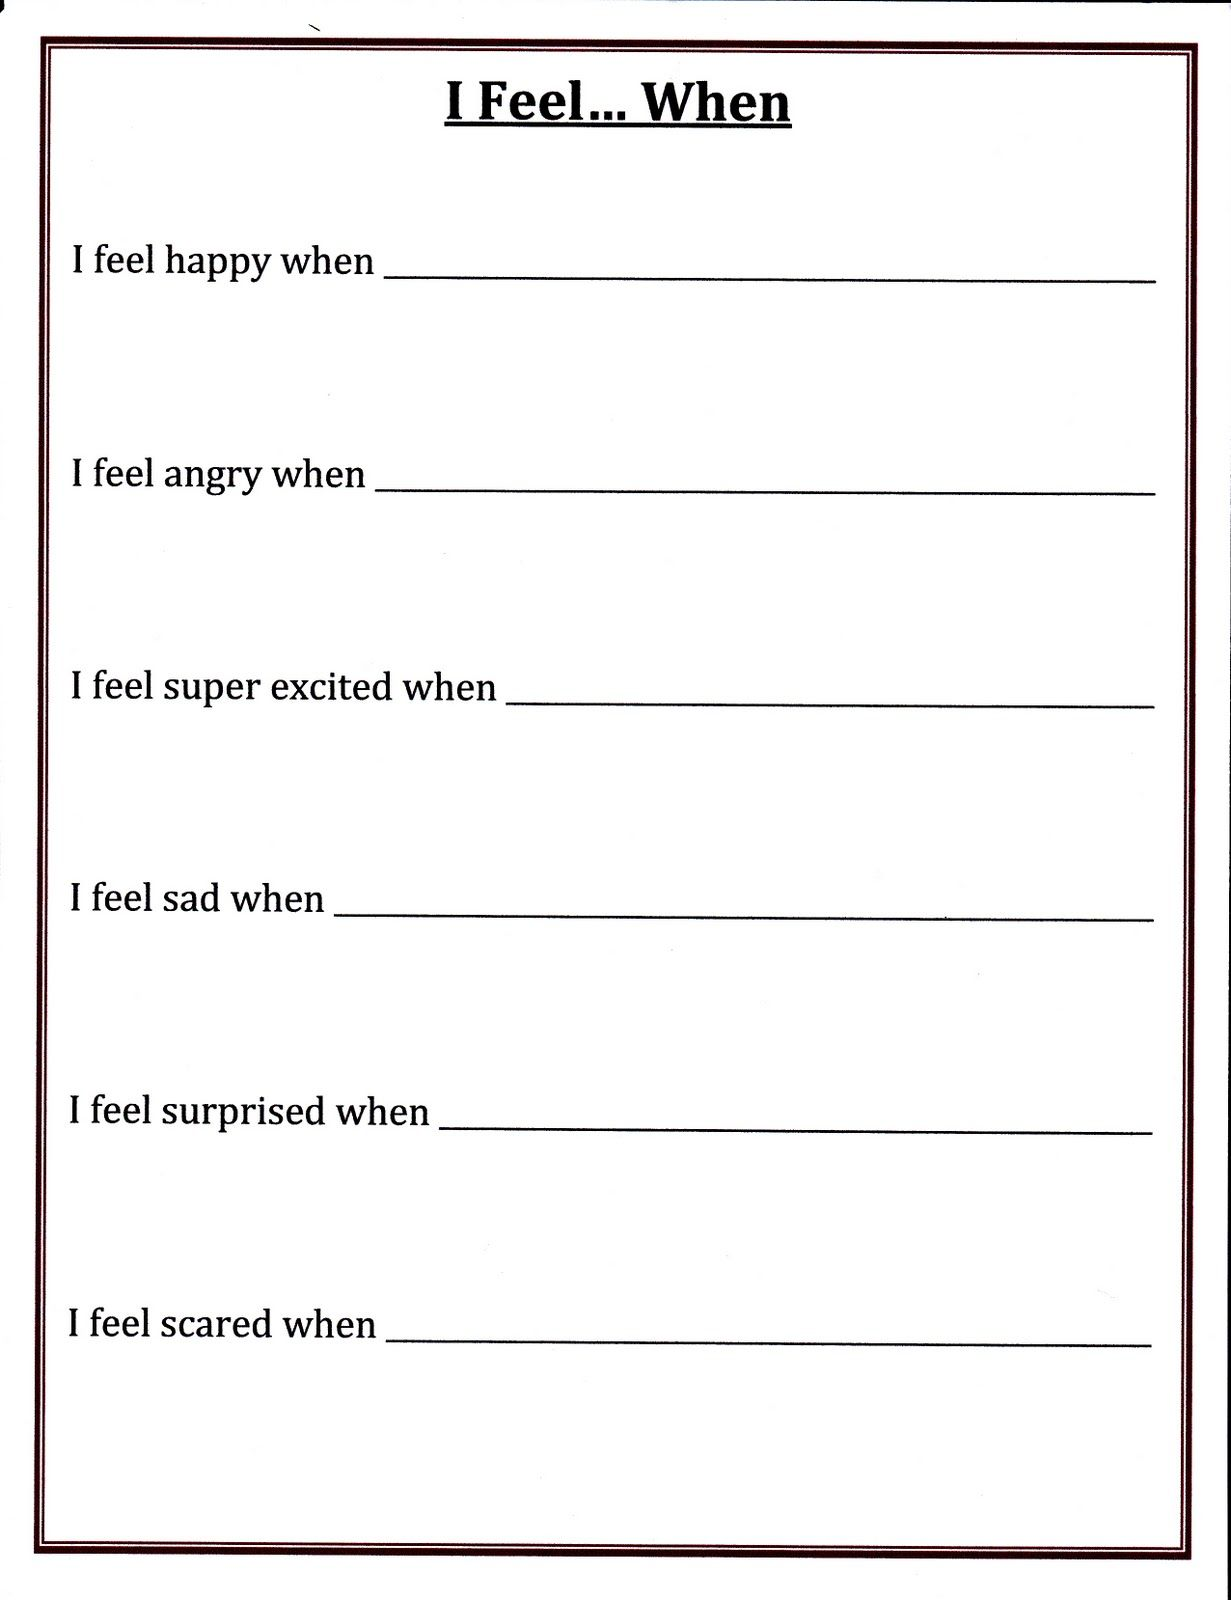 Worksheets Self Esteem Worksheets For Kids expressing yourself children do not always understand the range of their feelings by helping self esteem worksheetsco